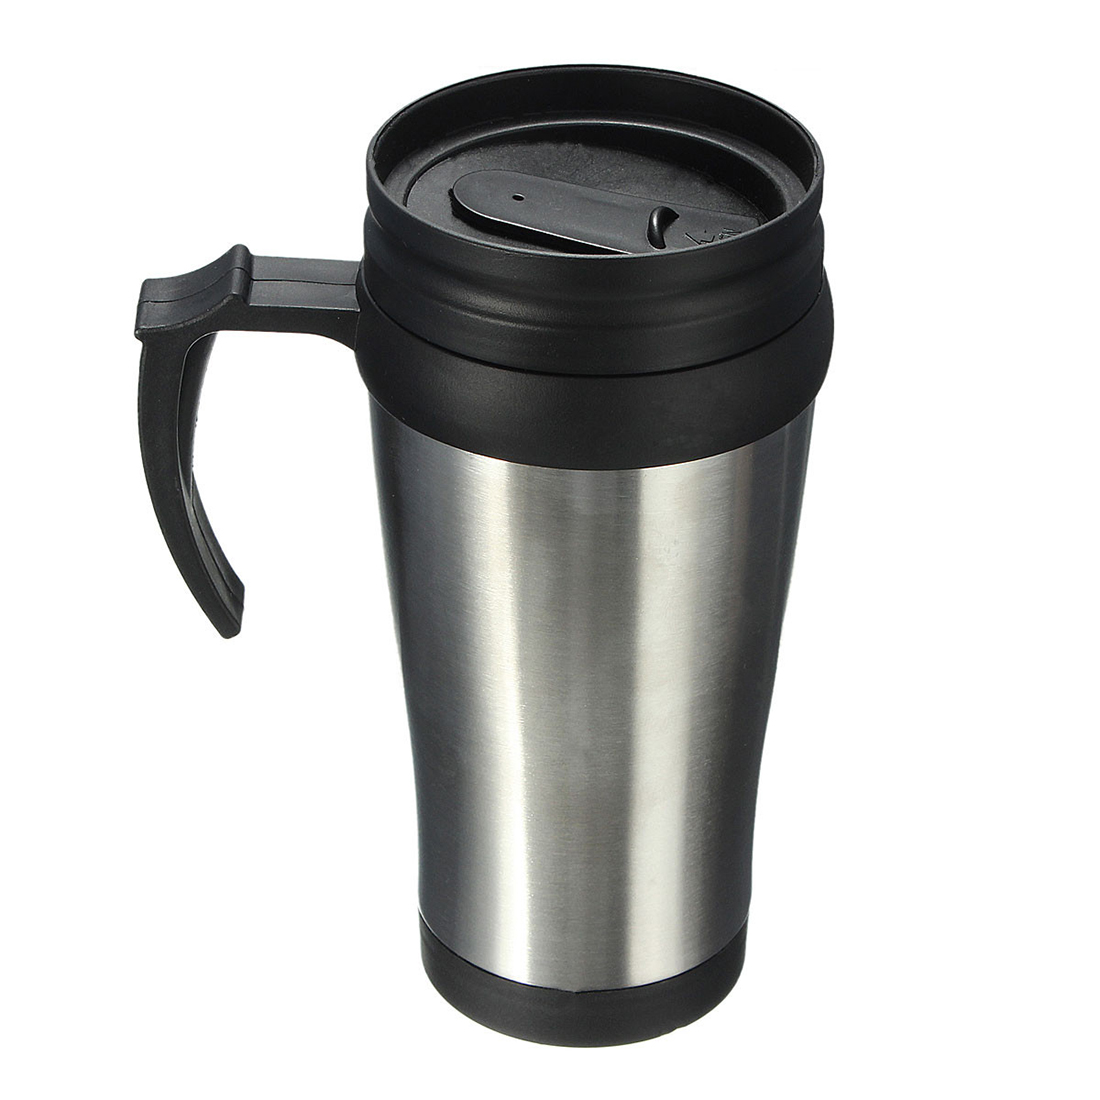 450ml stainless steel insulated thermos tea water cup coffee mug travel bottle ebay. Black Bedroom Furniture Sets. Home Design Ideas